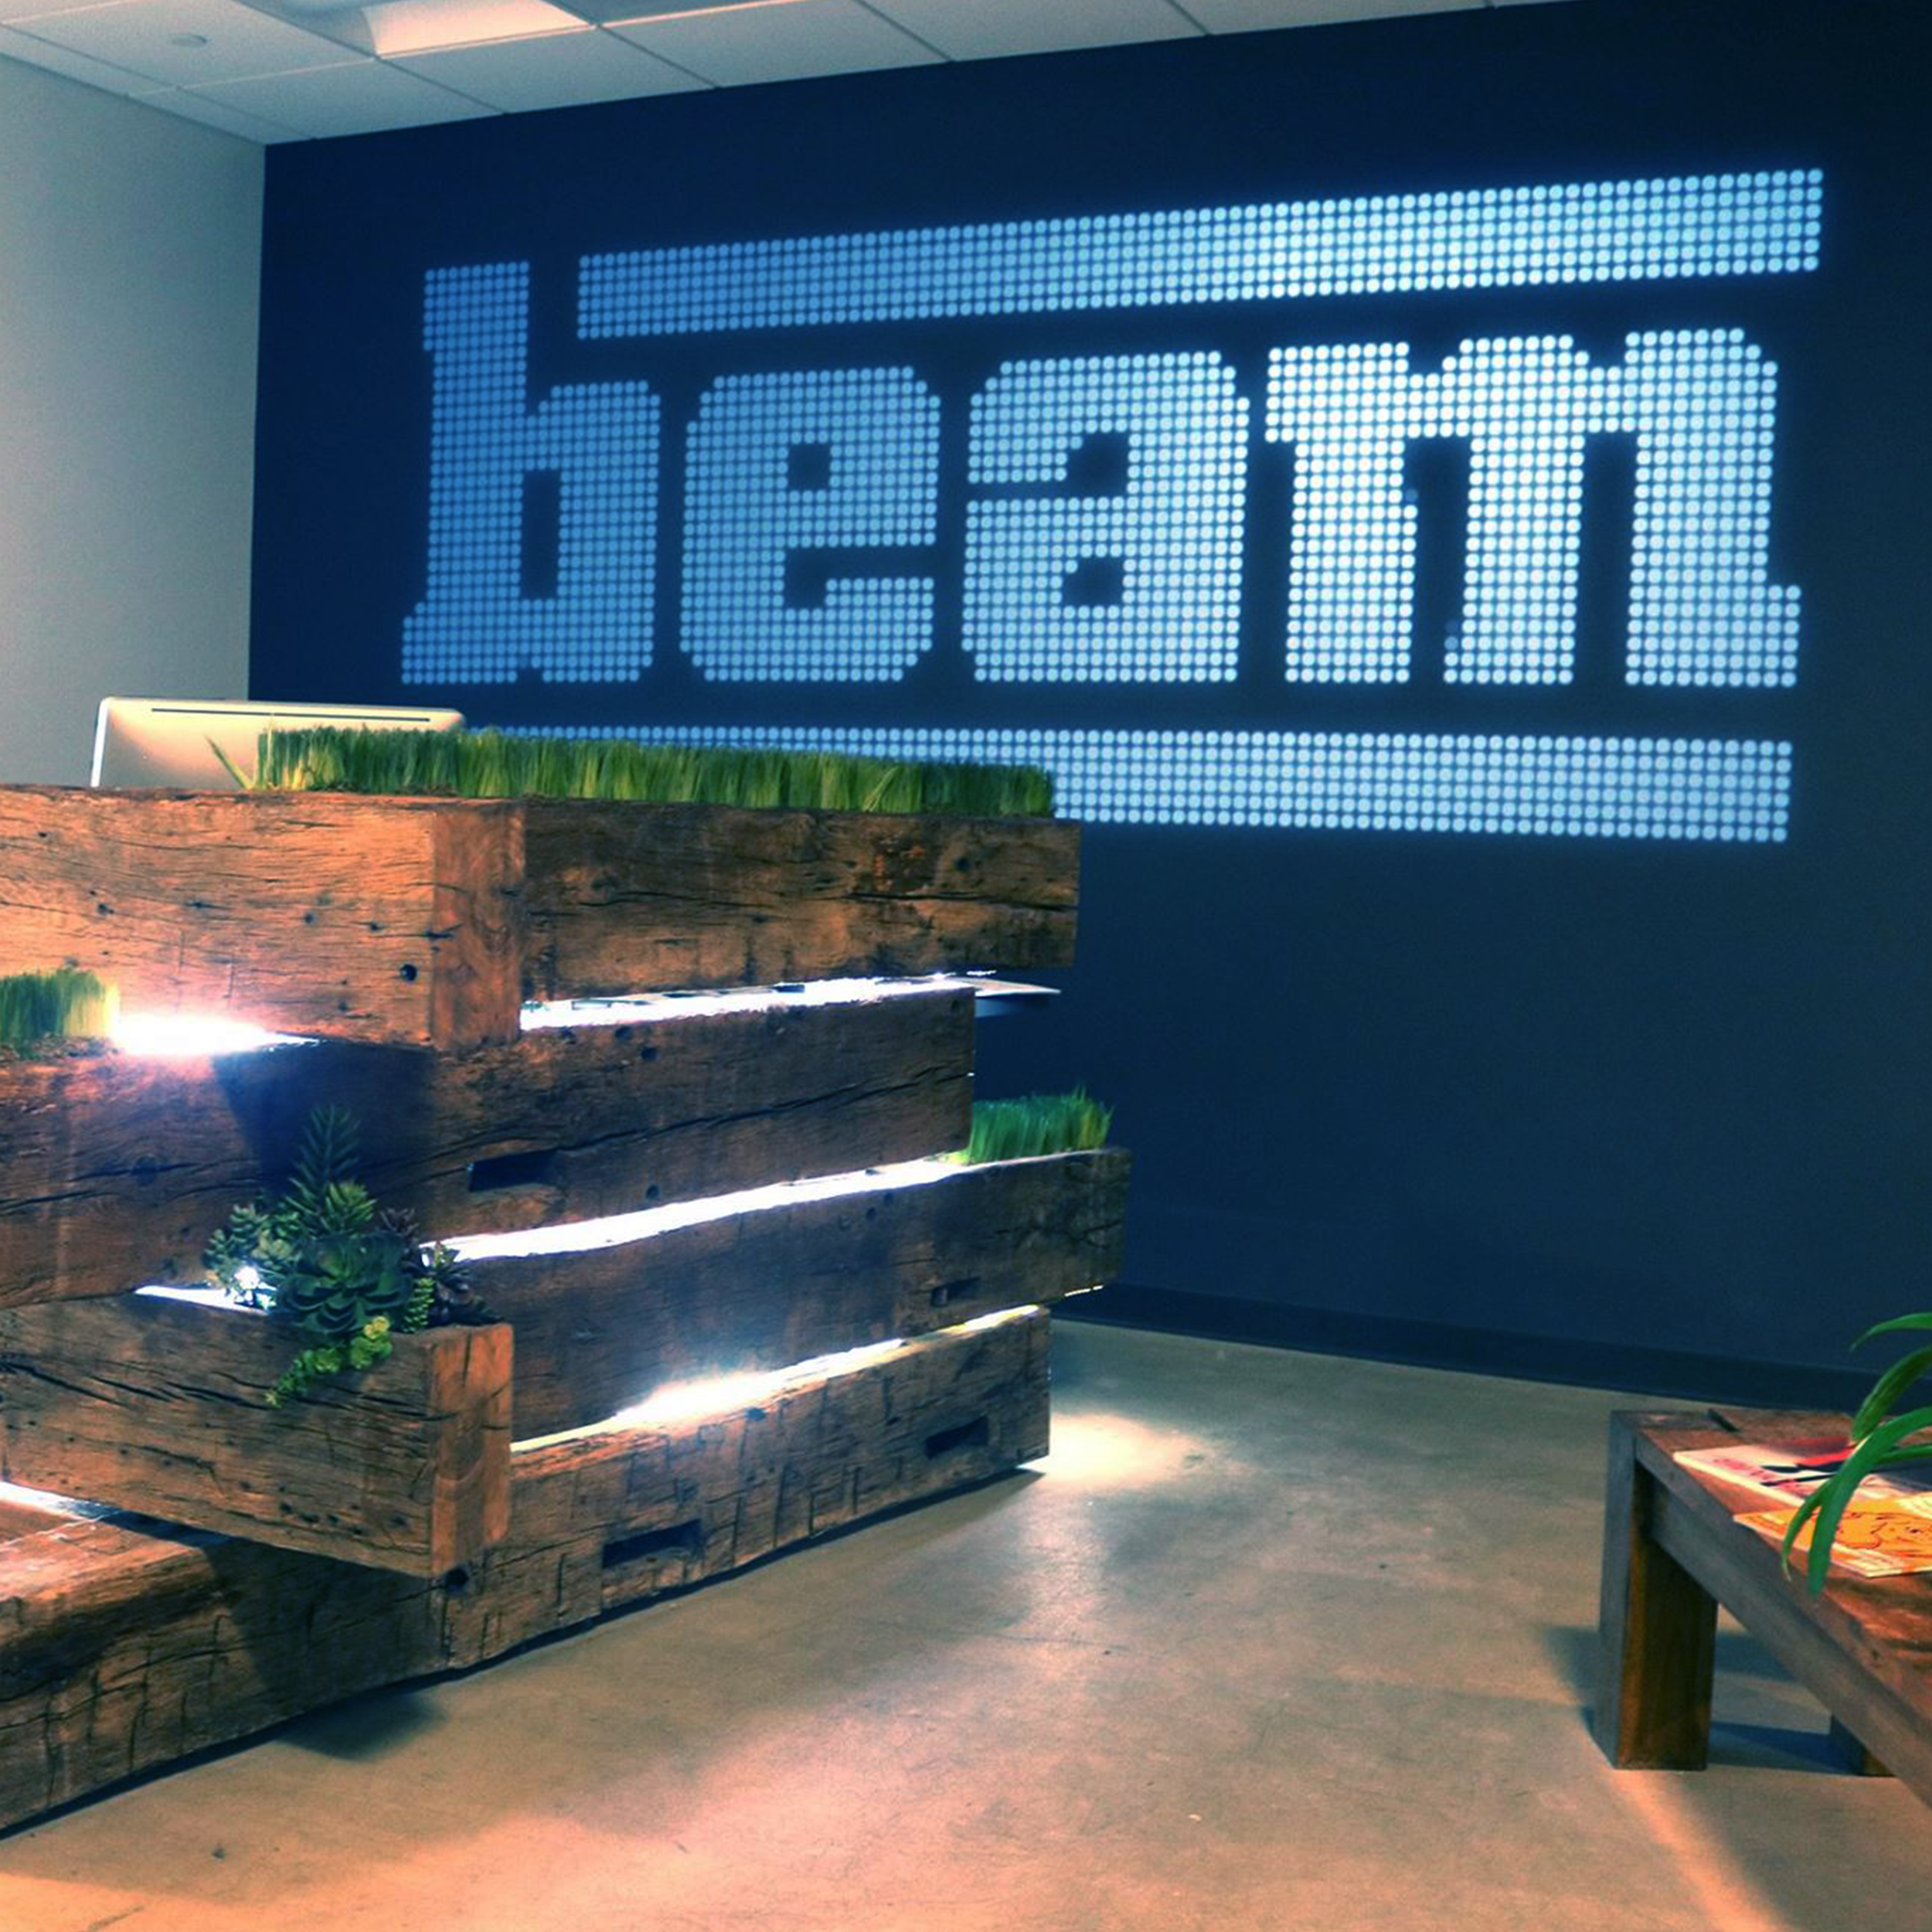 Beamland - I worked as an UX design intern for 5 months in 2015 at Beam Interactive, an interactive marketing agency in Boston, Massachusetts. Here's a summary of the experience. Read more ->